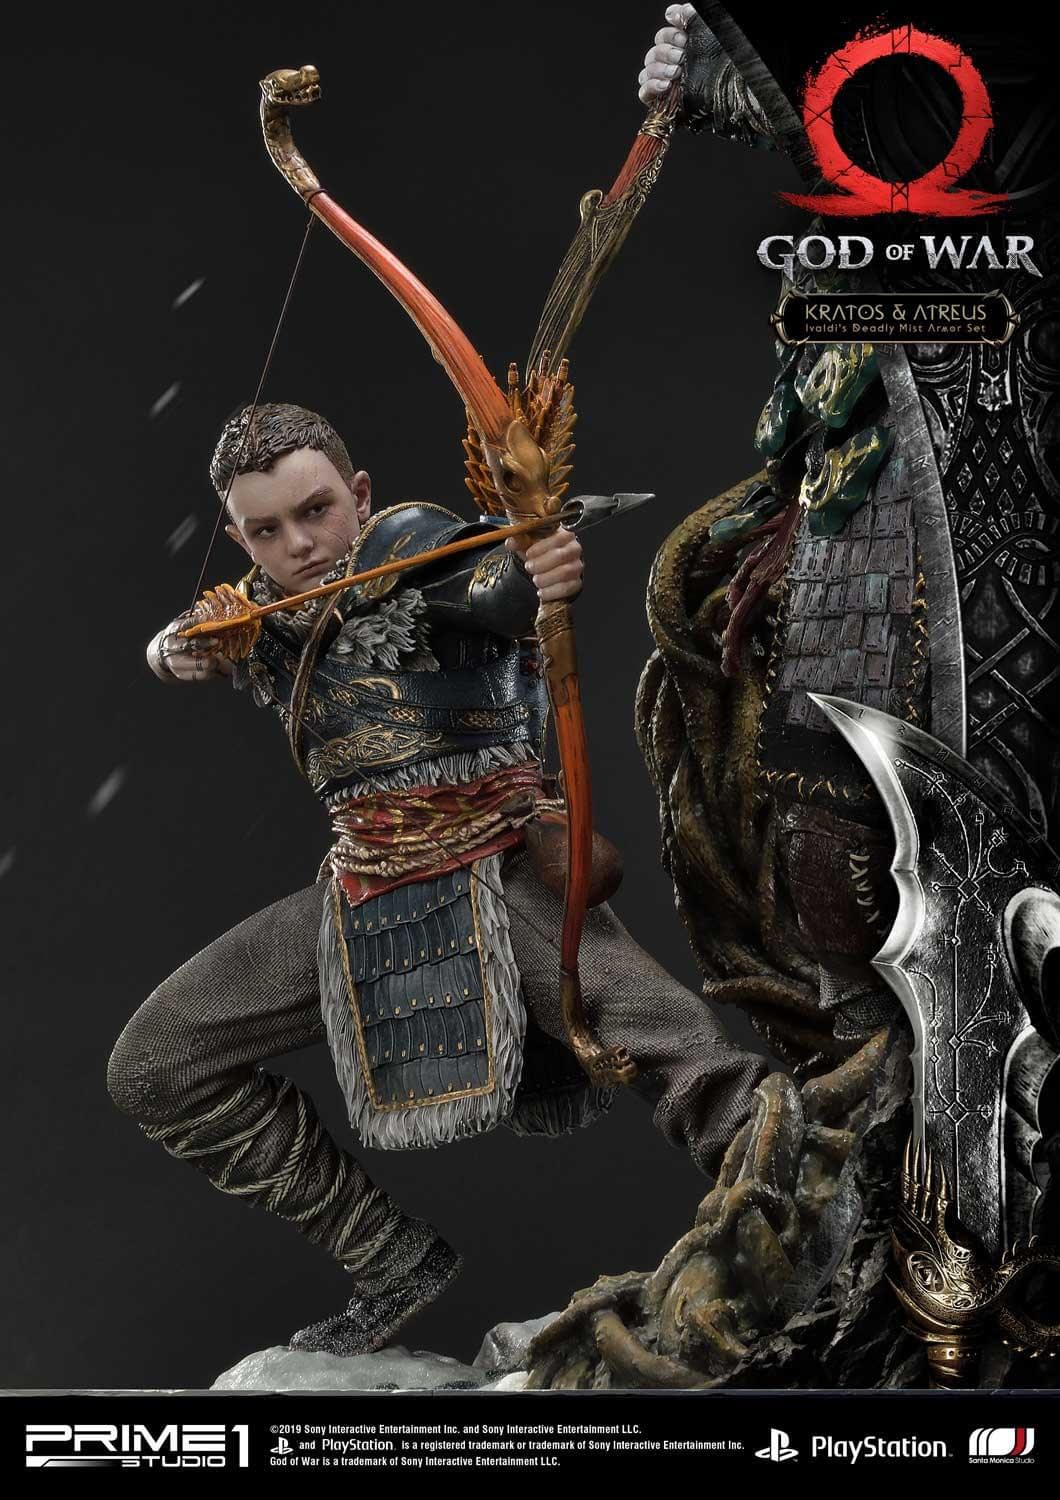 Own Ivaldi S Deadly Mist Armor With The New God Of War Statue